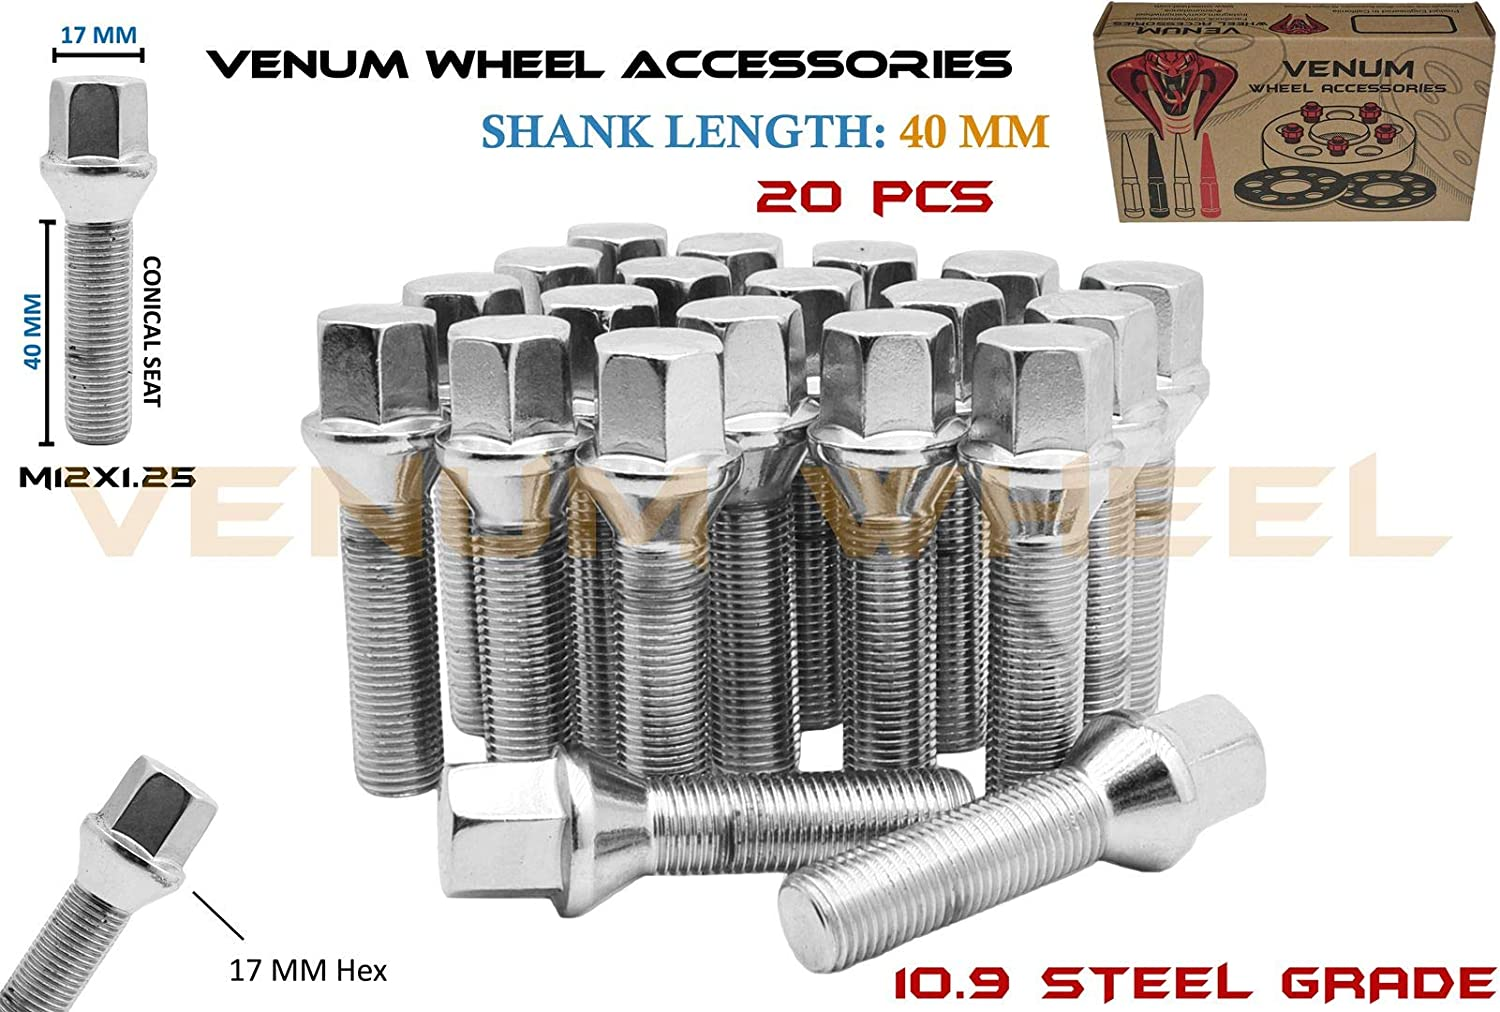 Venum wheel accessories Complete Set of M12x1.25 Chrome Tapered Conical Seat Lug Bolts 40 MM Extended Shank Length Works with Jeep Fiat Dodge Chrysler Alfa Romeo Factory & Aftermarket Wheels